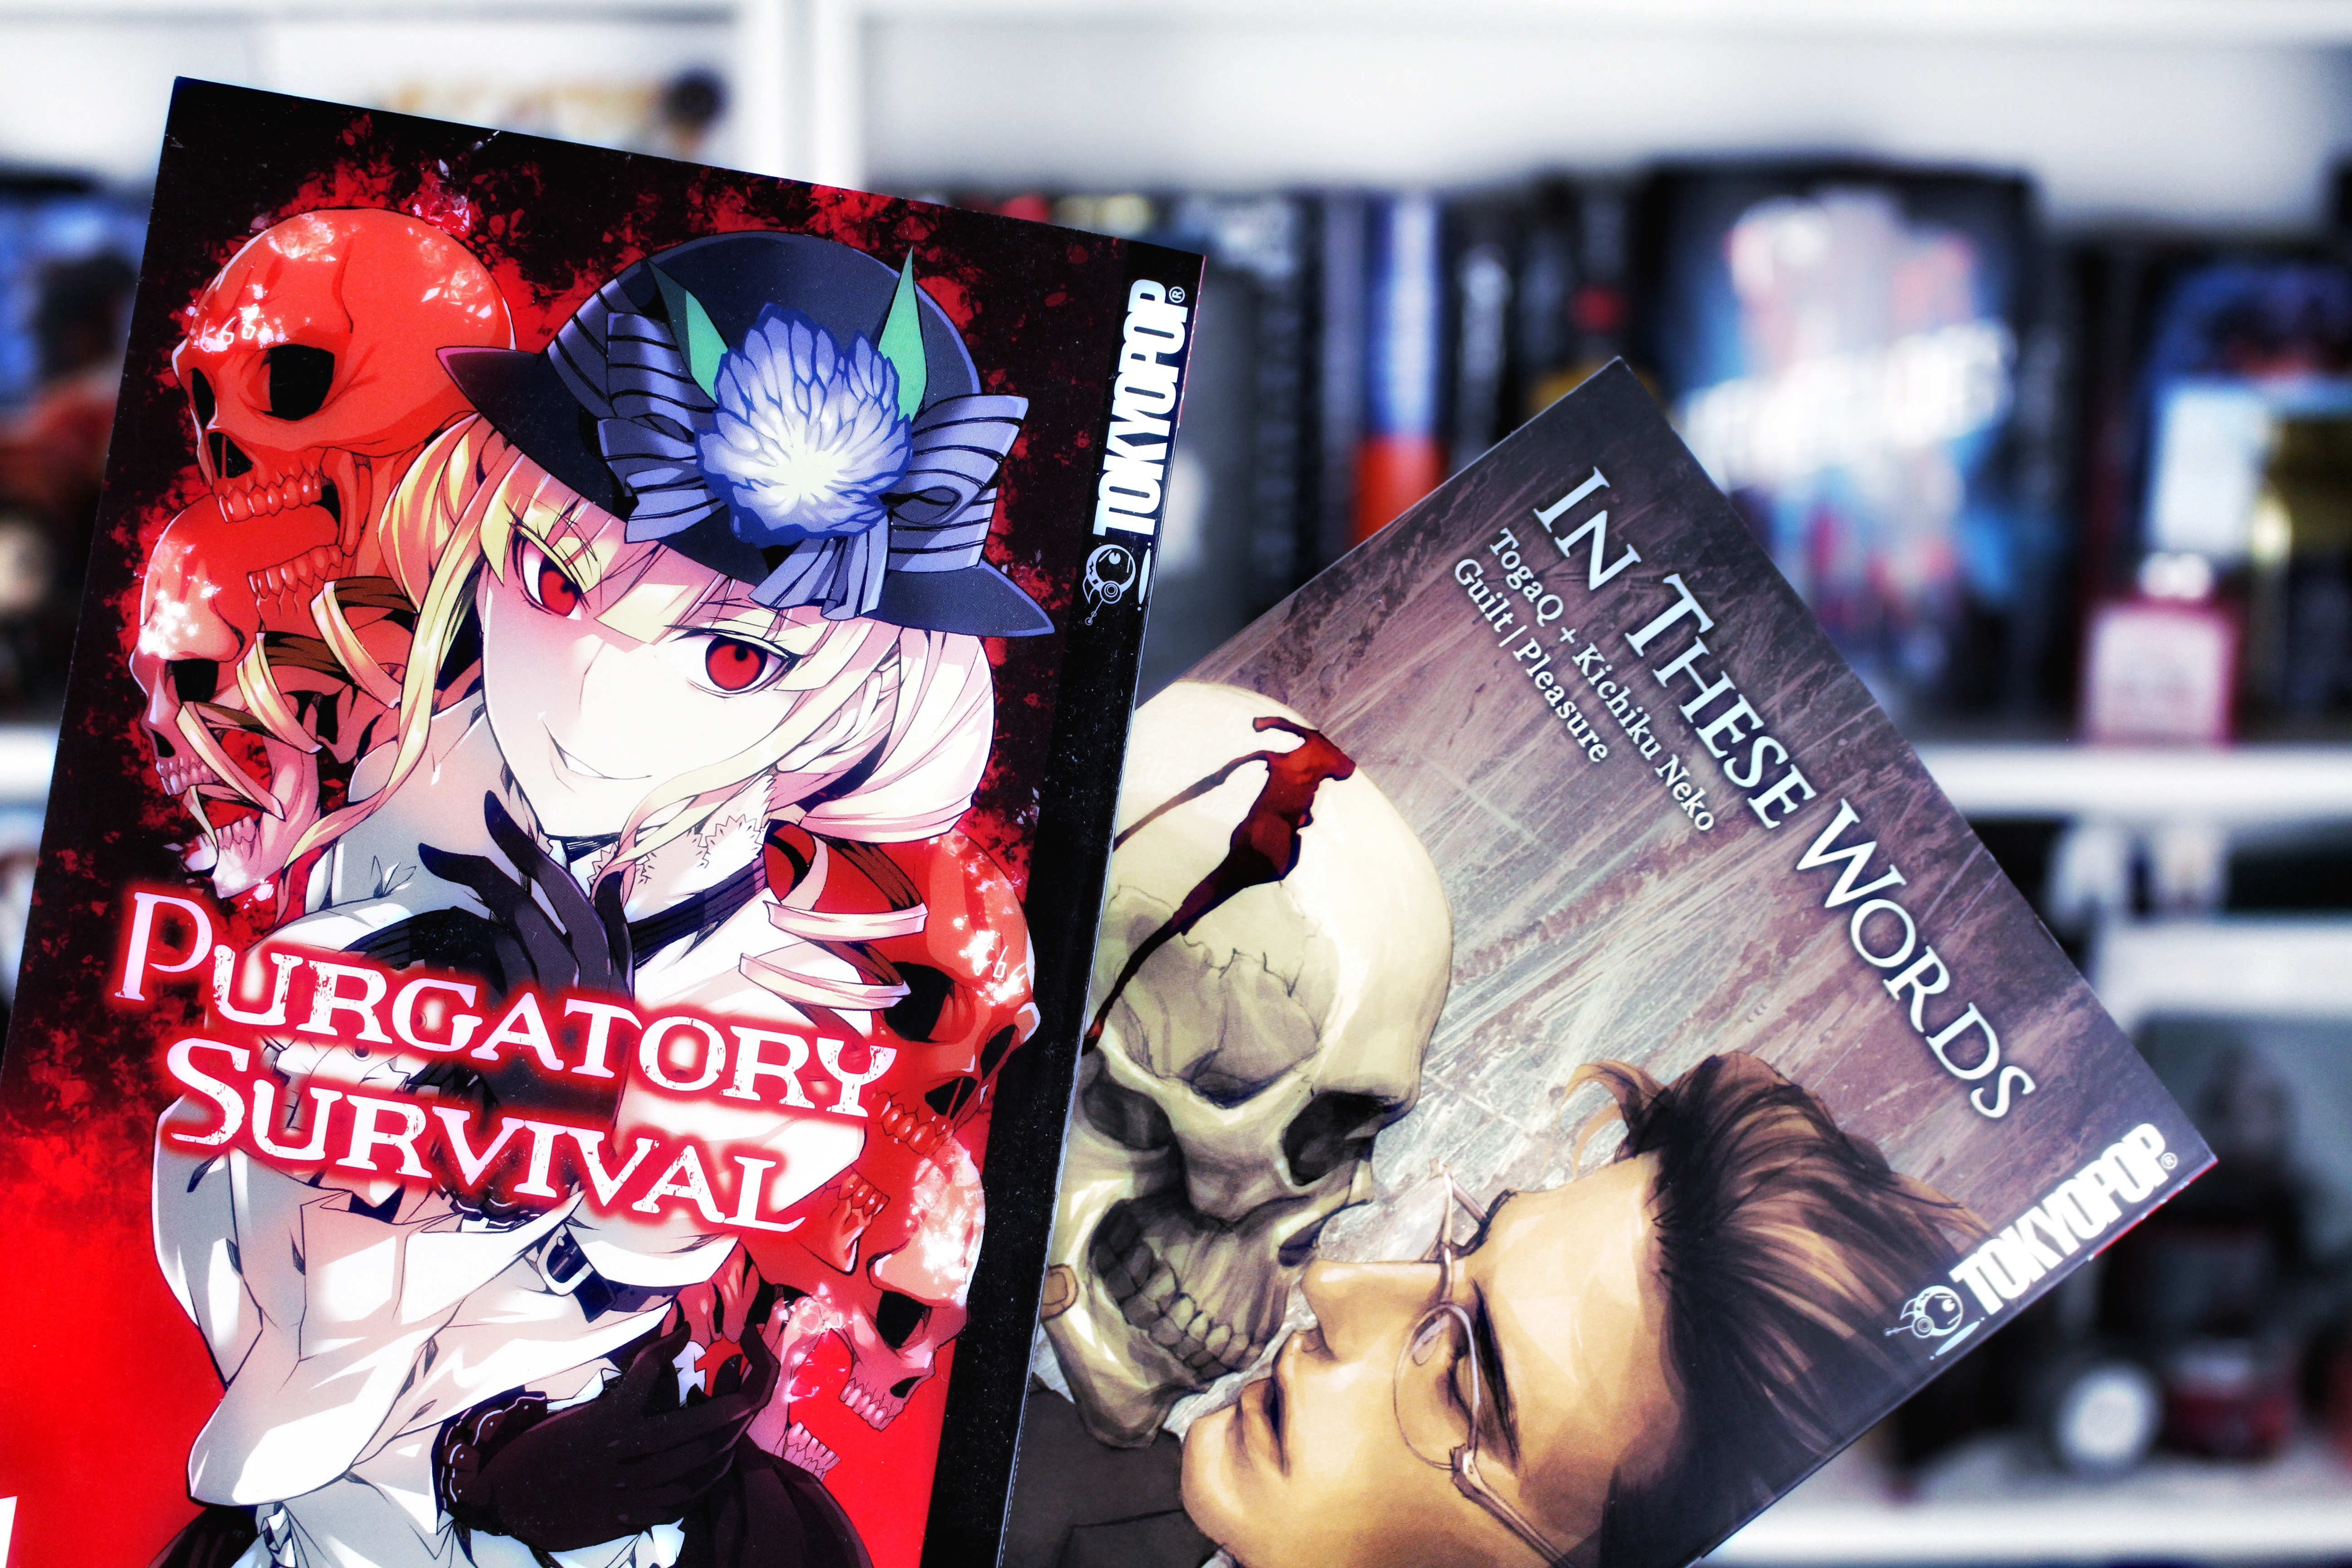 Rezension: Purgatory Survival 01  & In these words 01